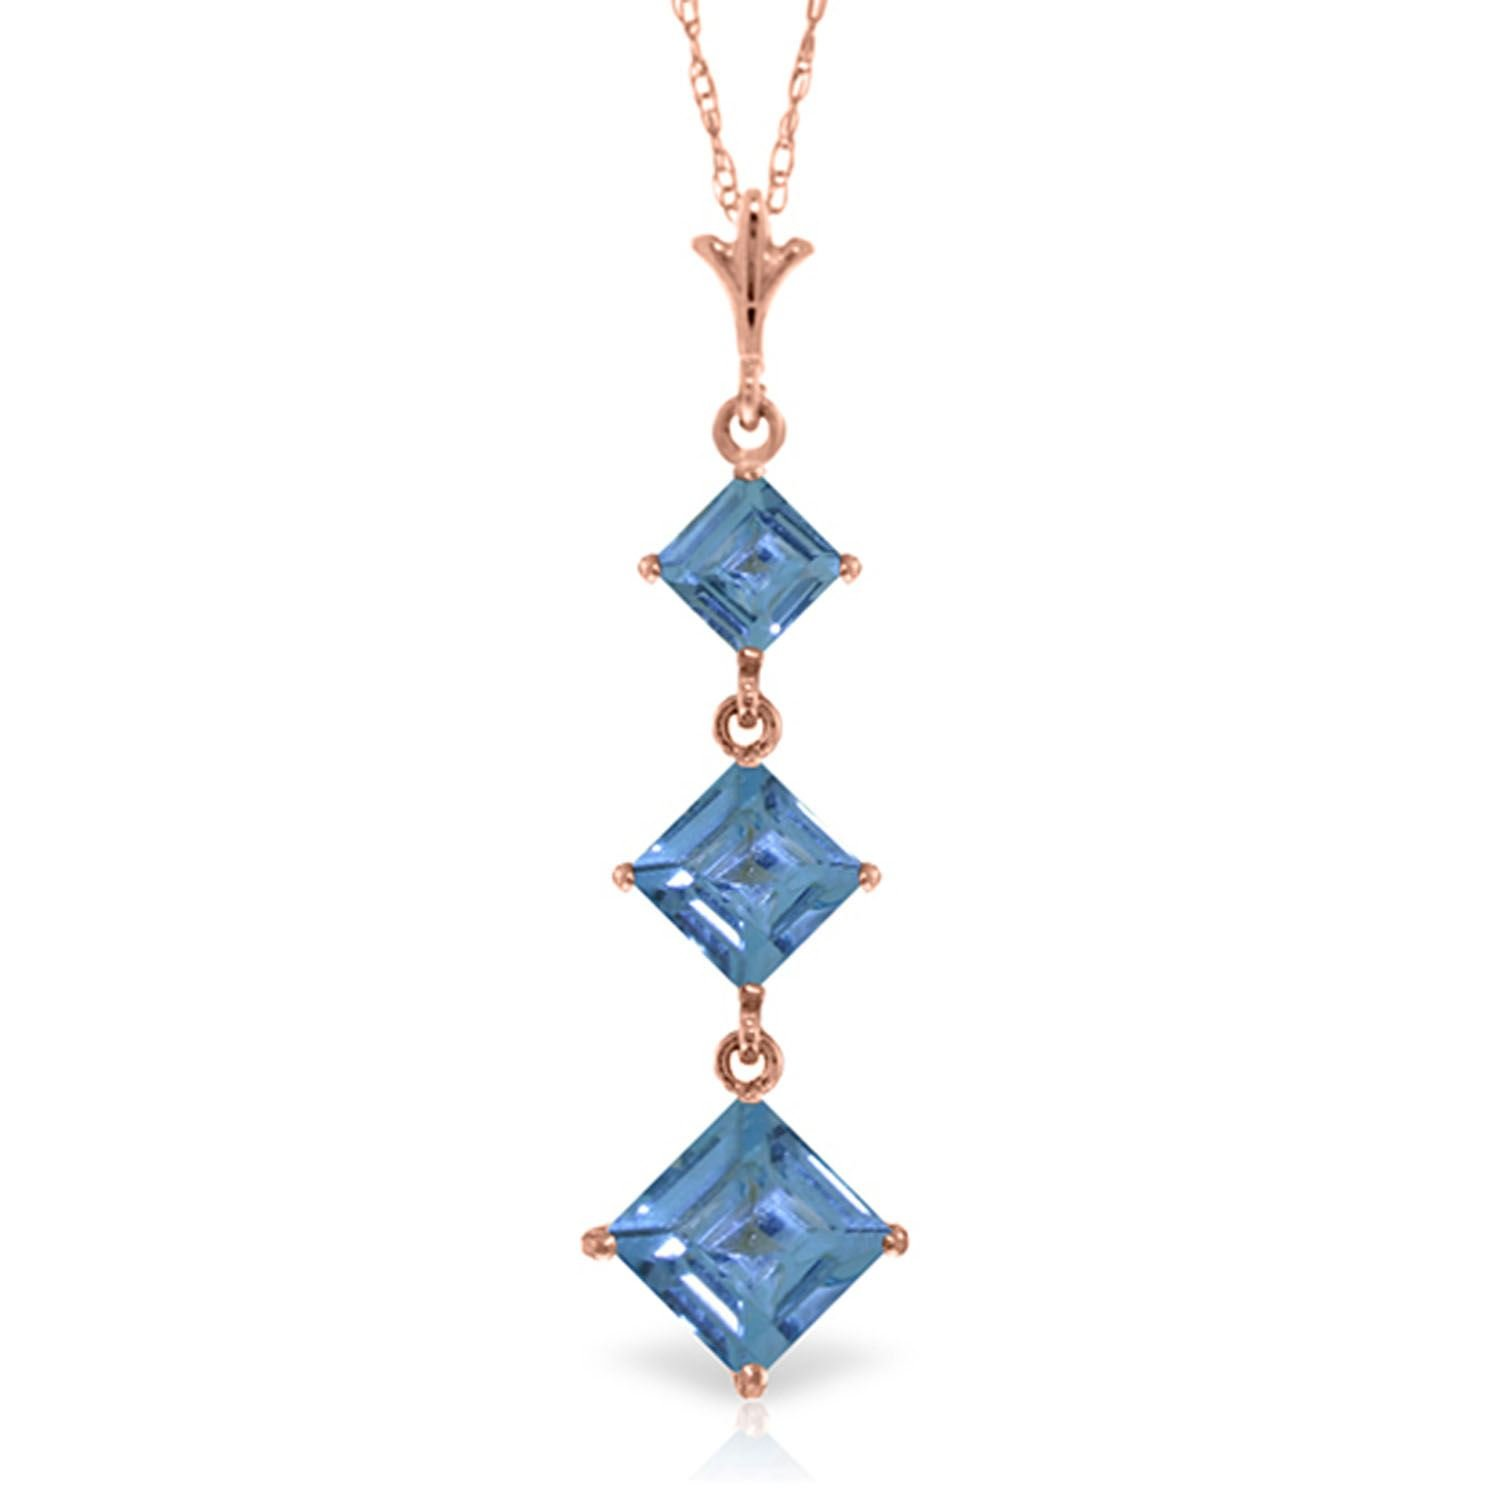 ALARRI 2.4 CTW 14K Solid Rose Gold Waterdrops Blue Topaz Necklace with 18 Inch Chain Length